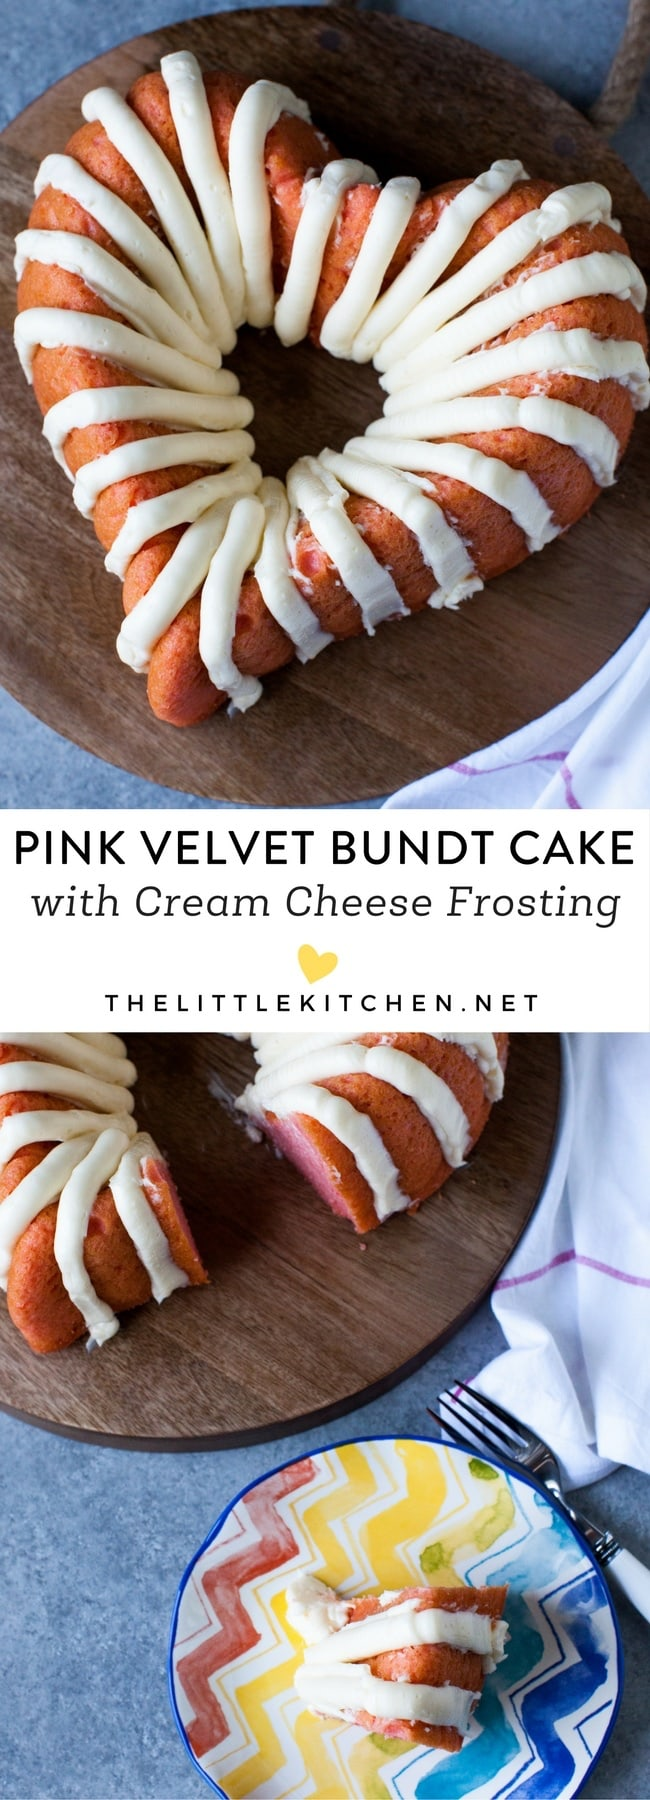 Heart-Shaped Pink Velvet Bundt Cake with Cream Cheese Frosting from thelittlekitchen.net